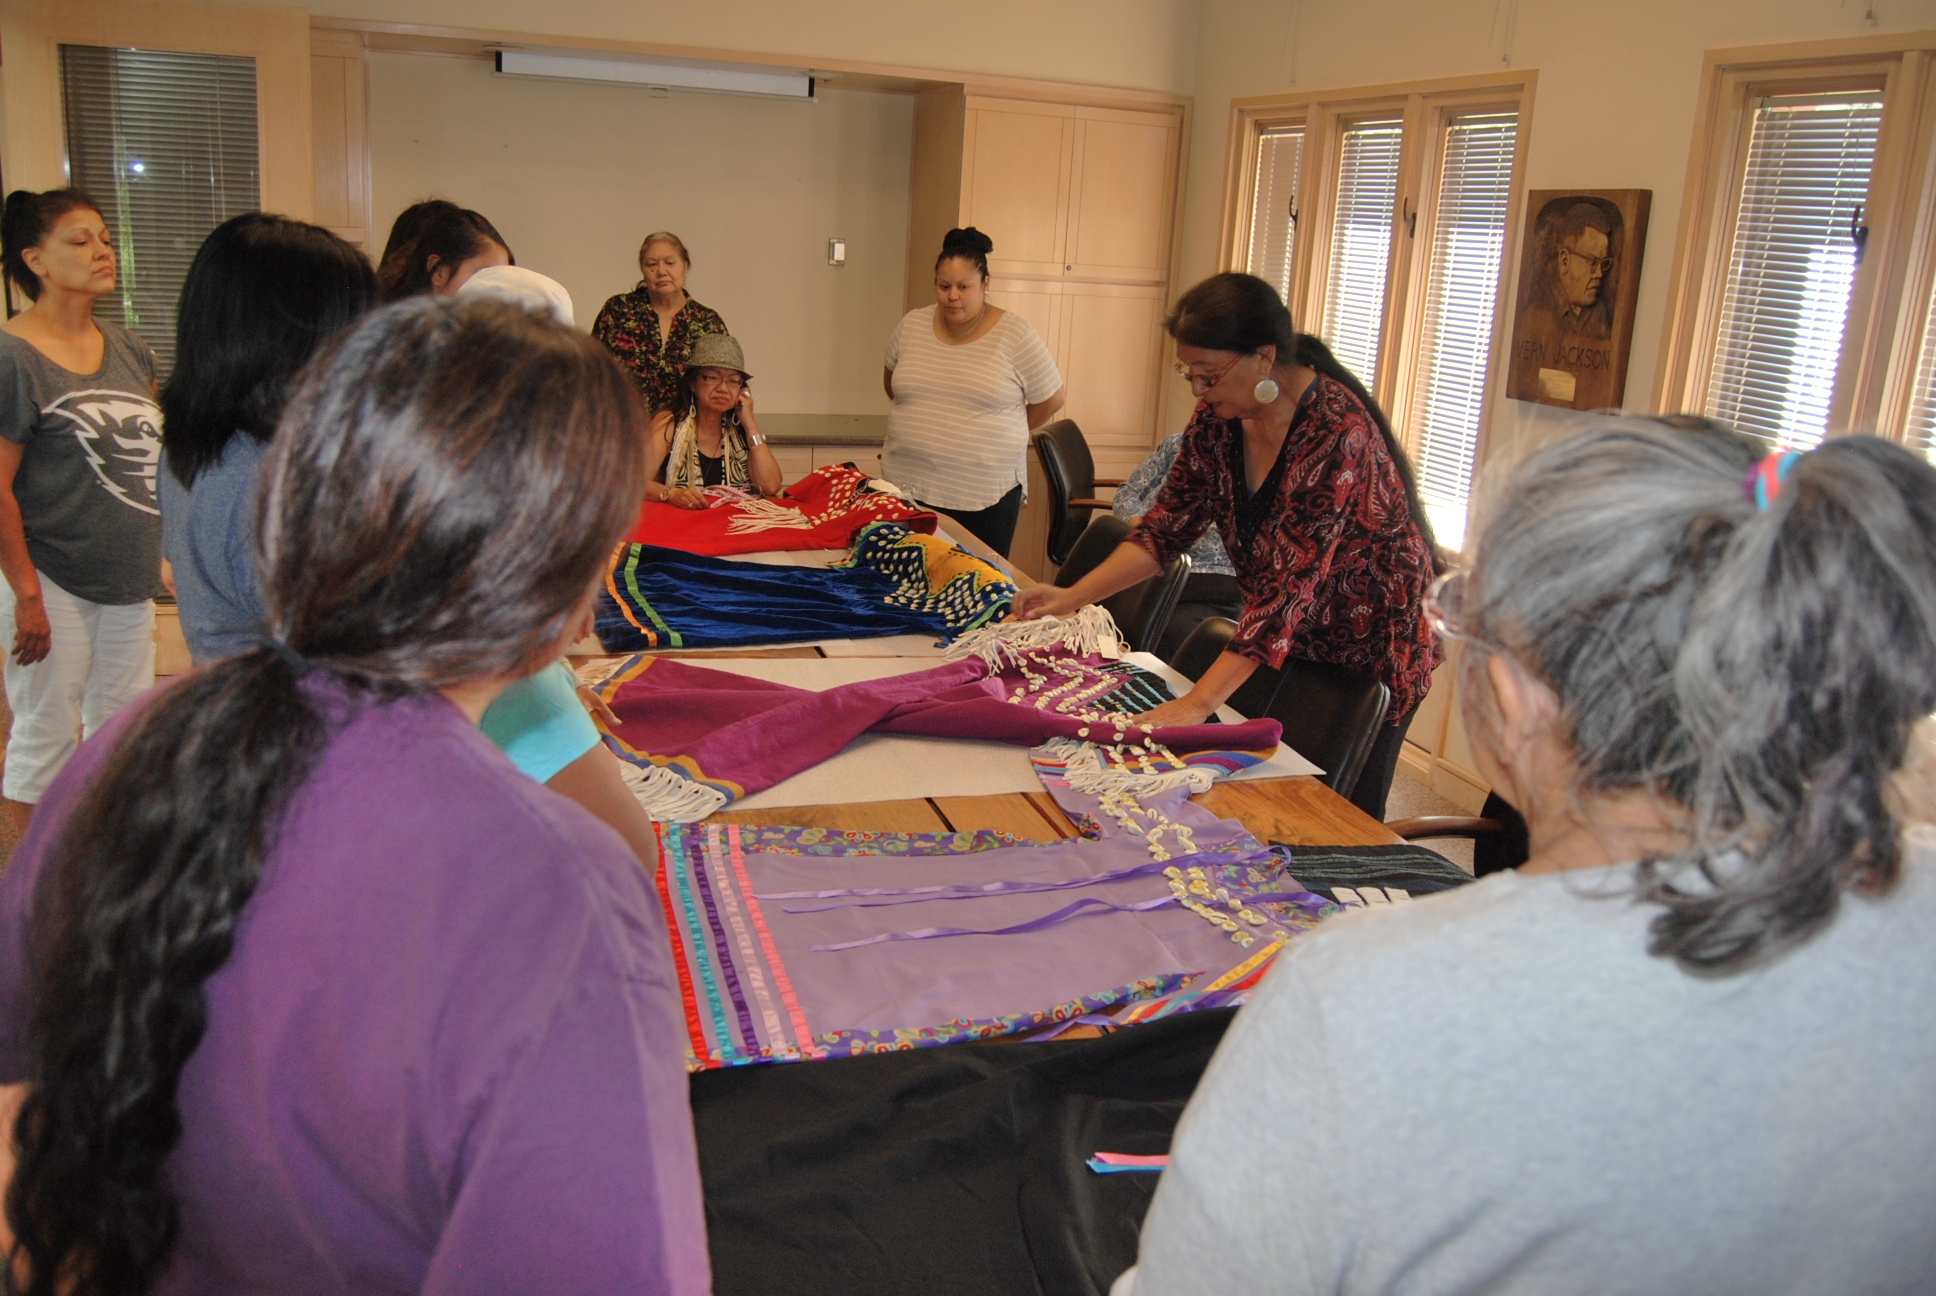 Plateau dressmaking workshop participants at The Museum at Warm Springs